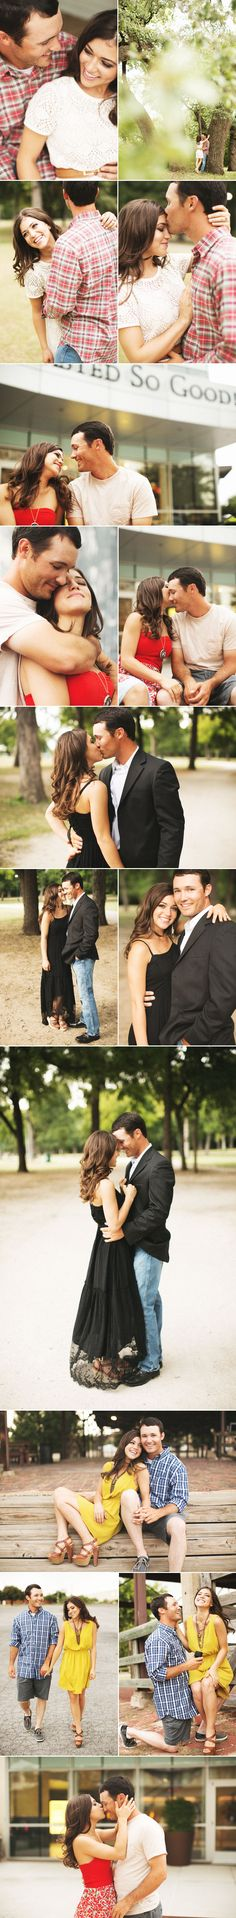 couple photo ideas. too cute!